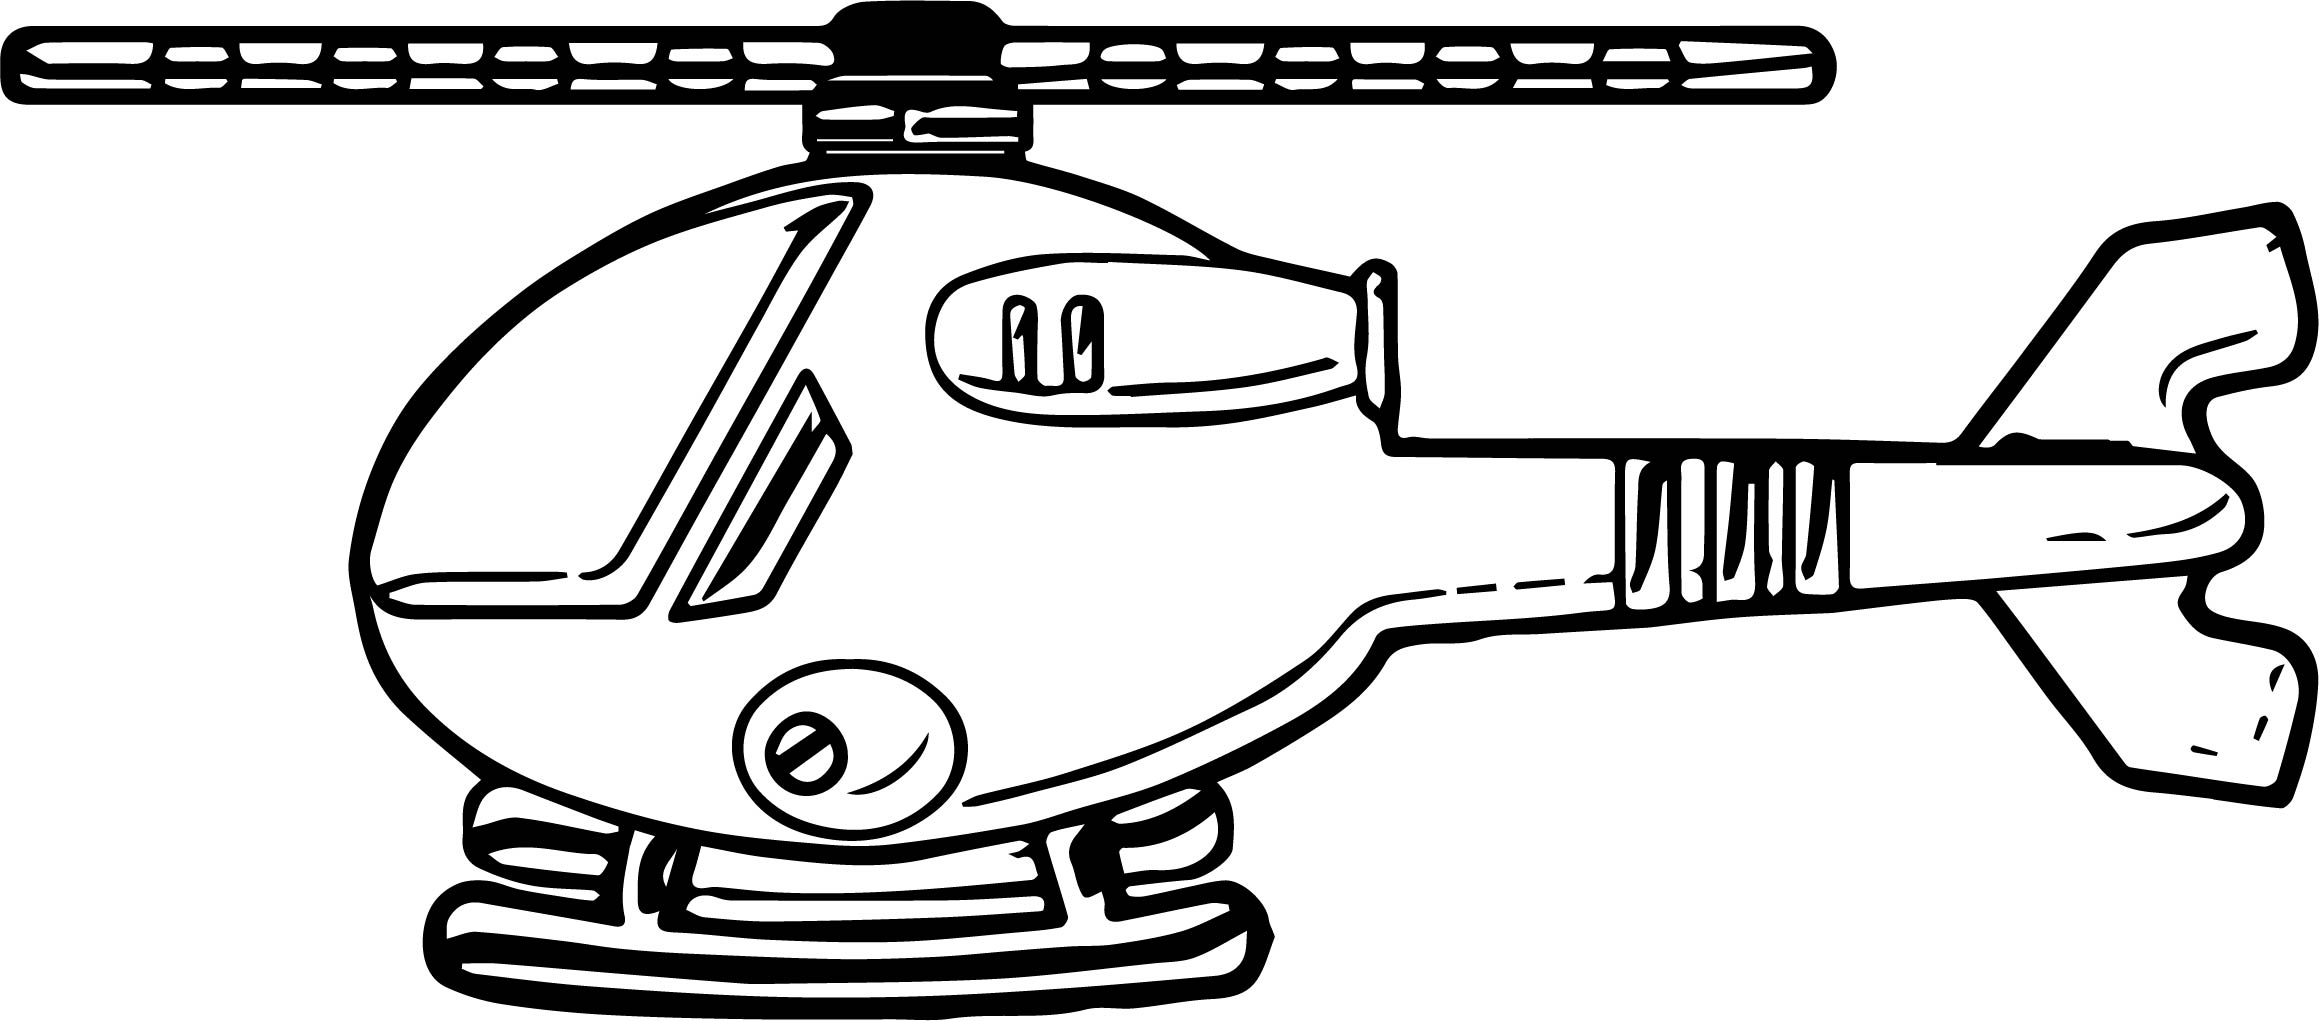 Helicopter Coloring Page 34